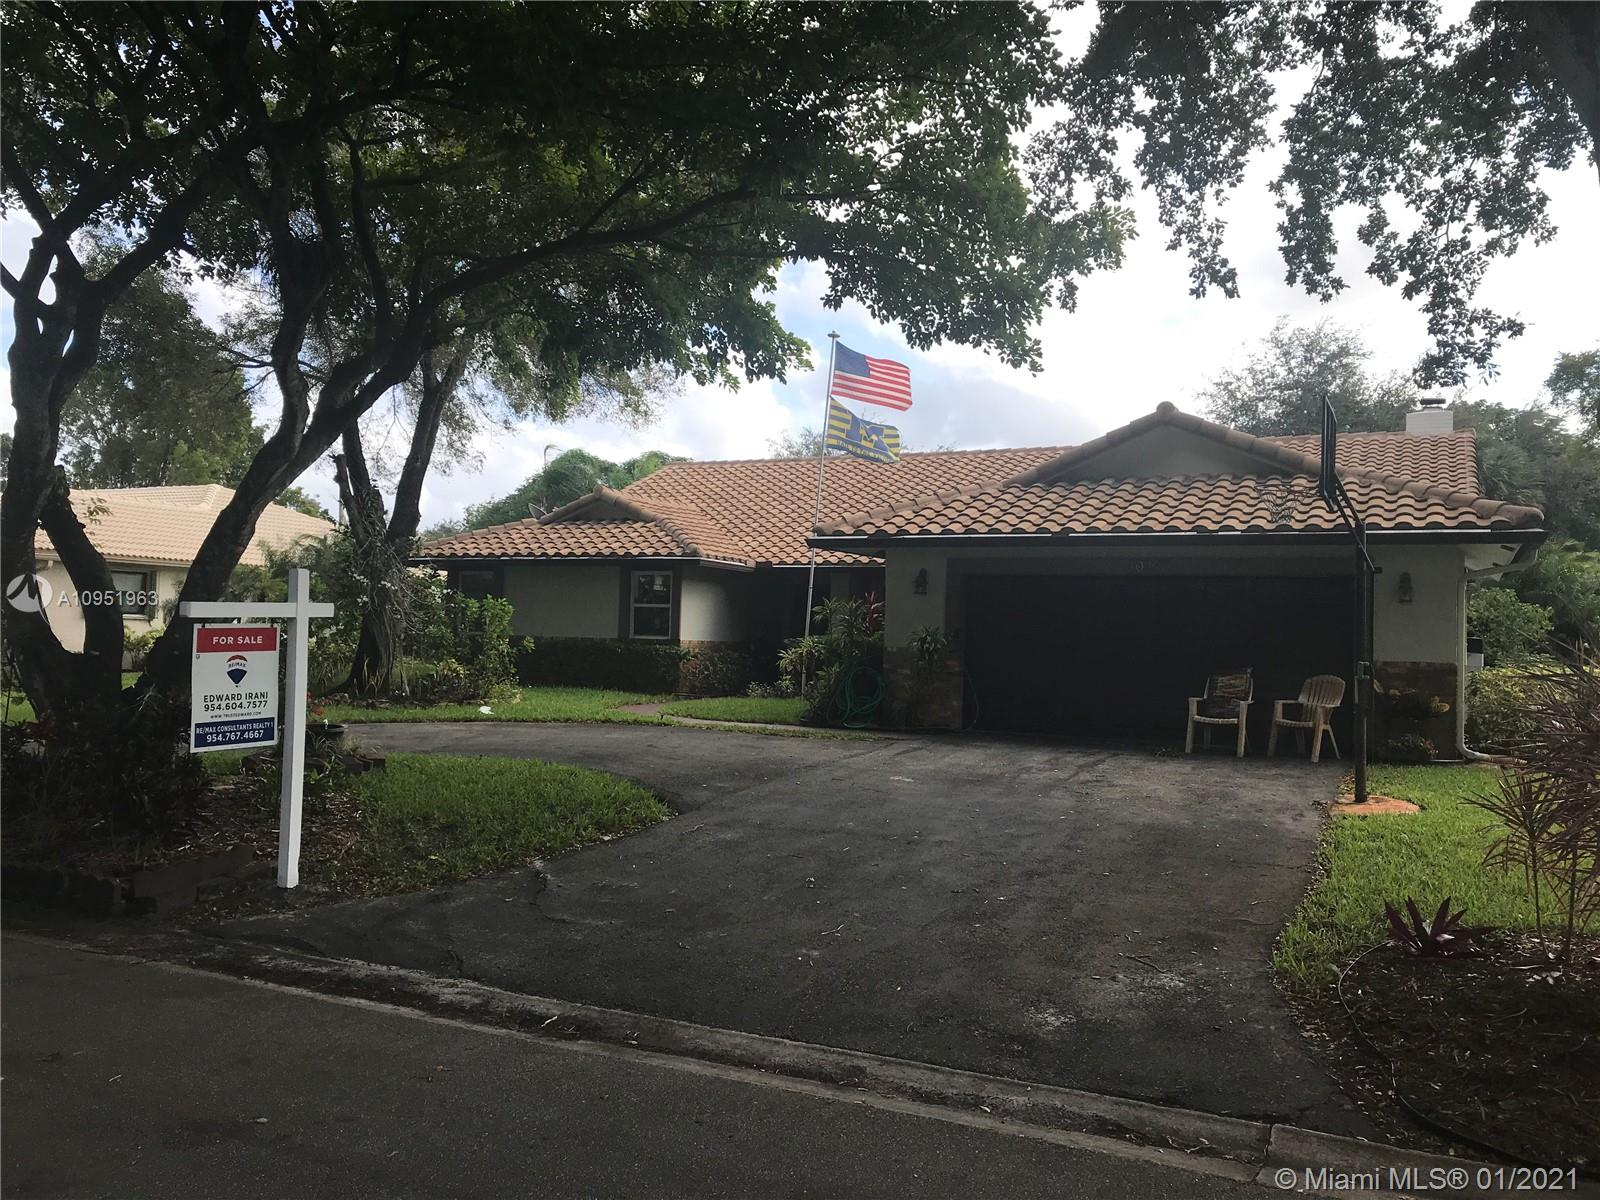 CYPRESS LAKES 3/2.5 POOL HOME. OPEN FLOOR PLAN, MUST SEE TO APPRECIATE. IDEALLY LOCATED NEAR A RATED SCHOOLS, SHOPPING, RESTAURANTS & HIGHWAYS. QUIET, BEAUTIFULLY MANICURED COMMUNITY AND LOW HOA! No individual showings, per seller request, all showings will be done with scheduled open houses, next open house Nov 29 from 2-5pm SEE YOU AT THE OPEN HOUSE!